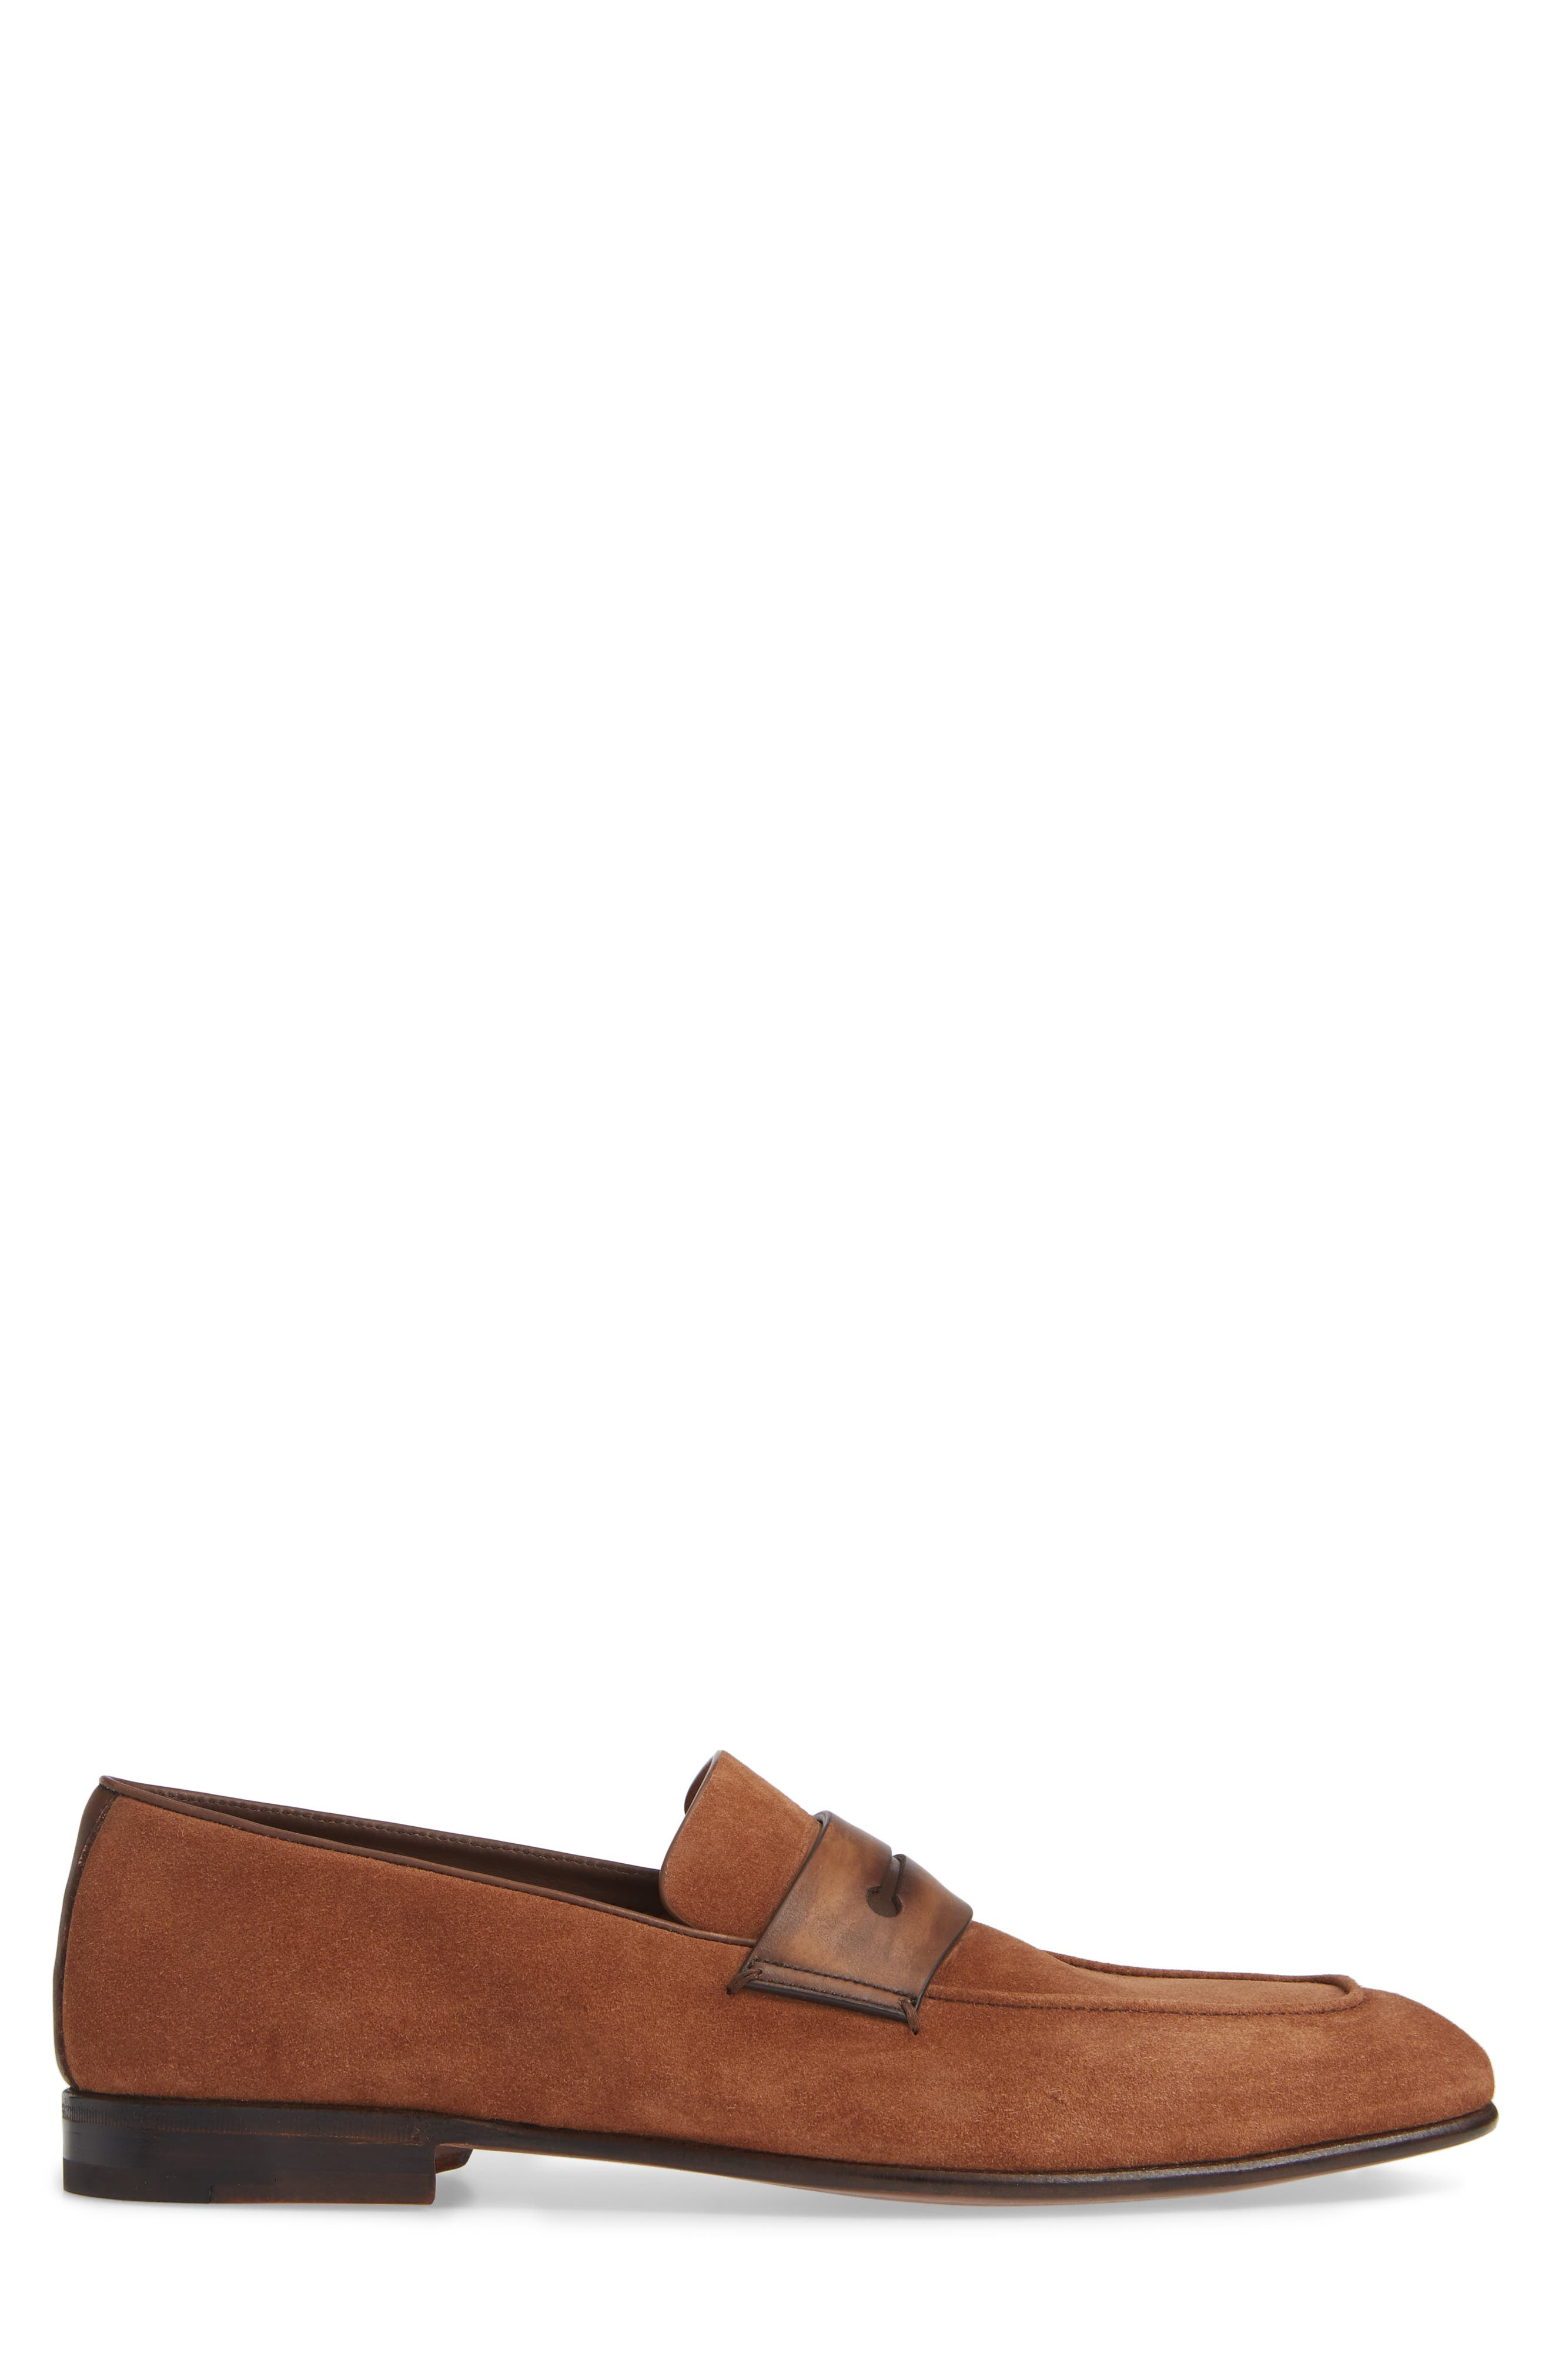 Penny Loafer,                             Alternate thumbnail 3, color,                             BROWN/BROWN